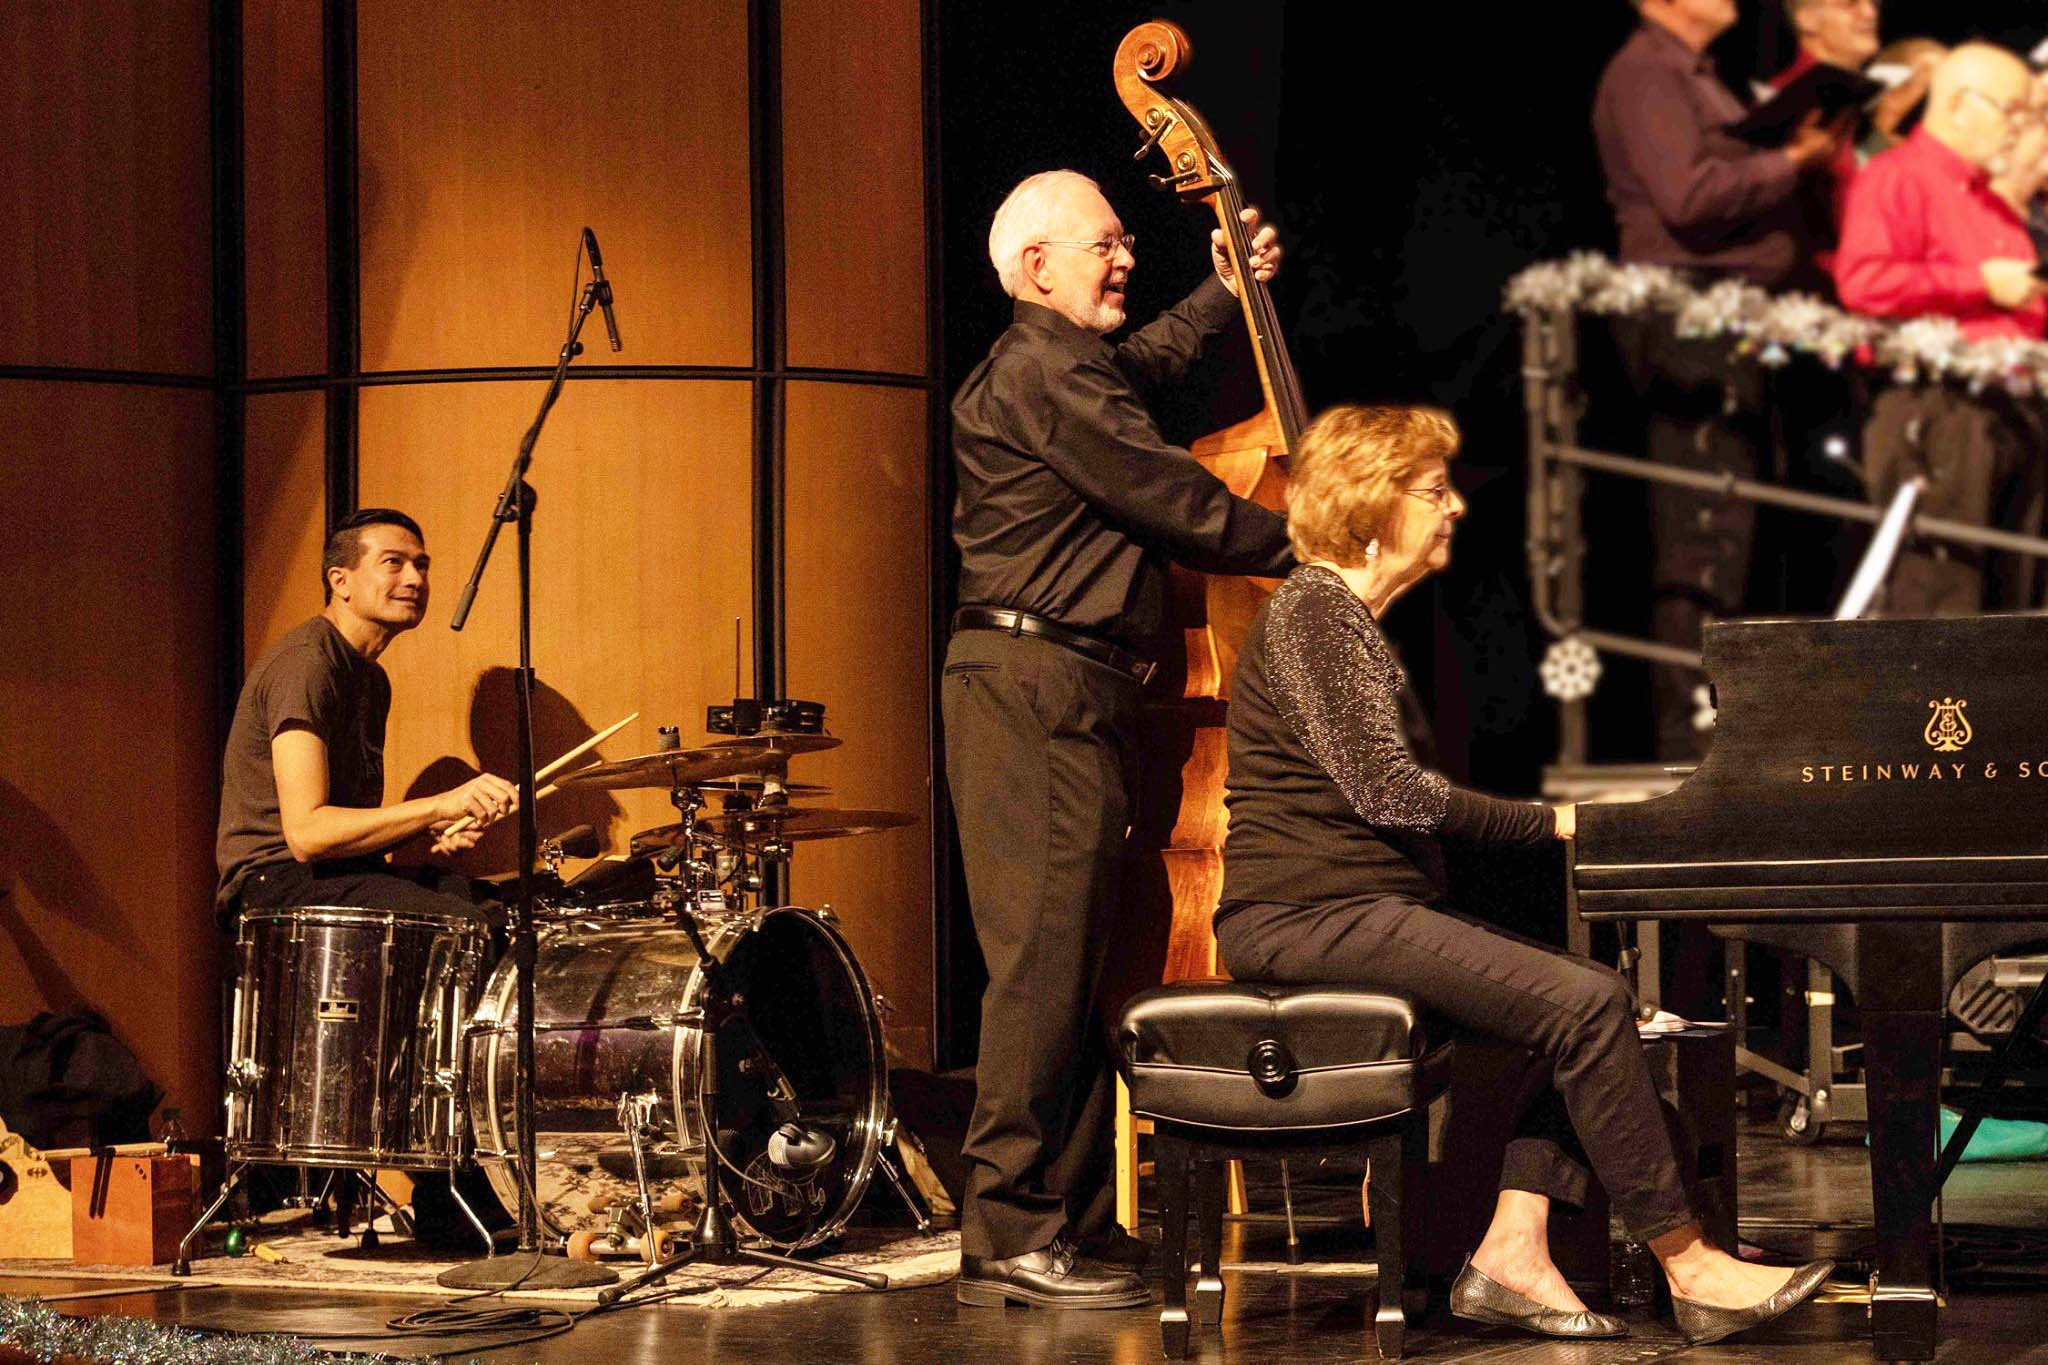 Our accomplished musicians Ben Adams (drums),  David Christmas (bass), Mary Sievert (grand piano)